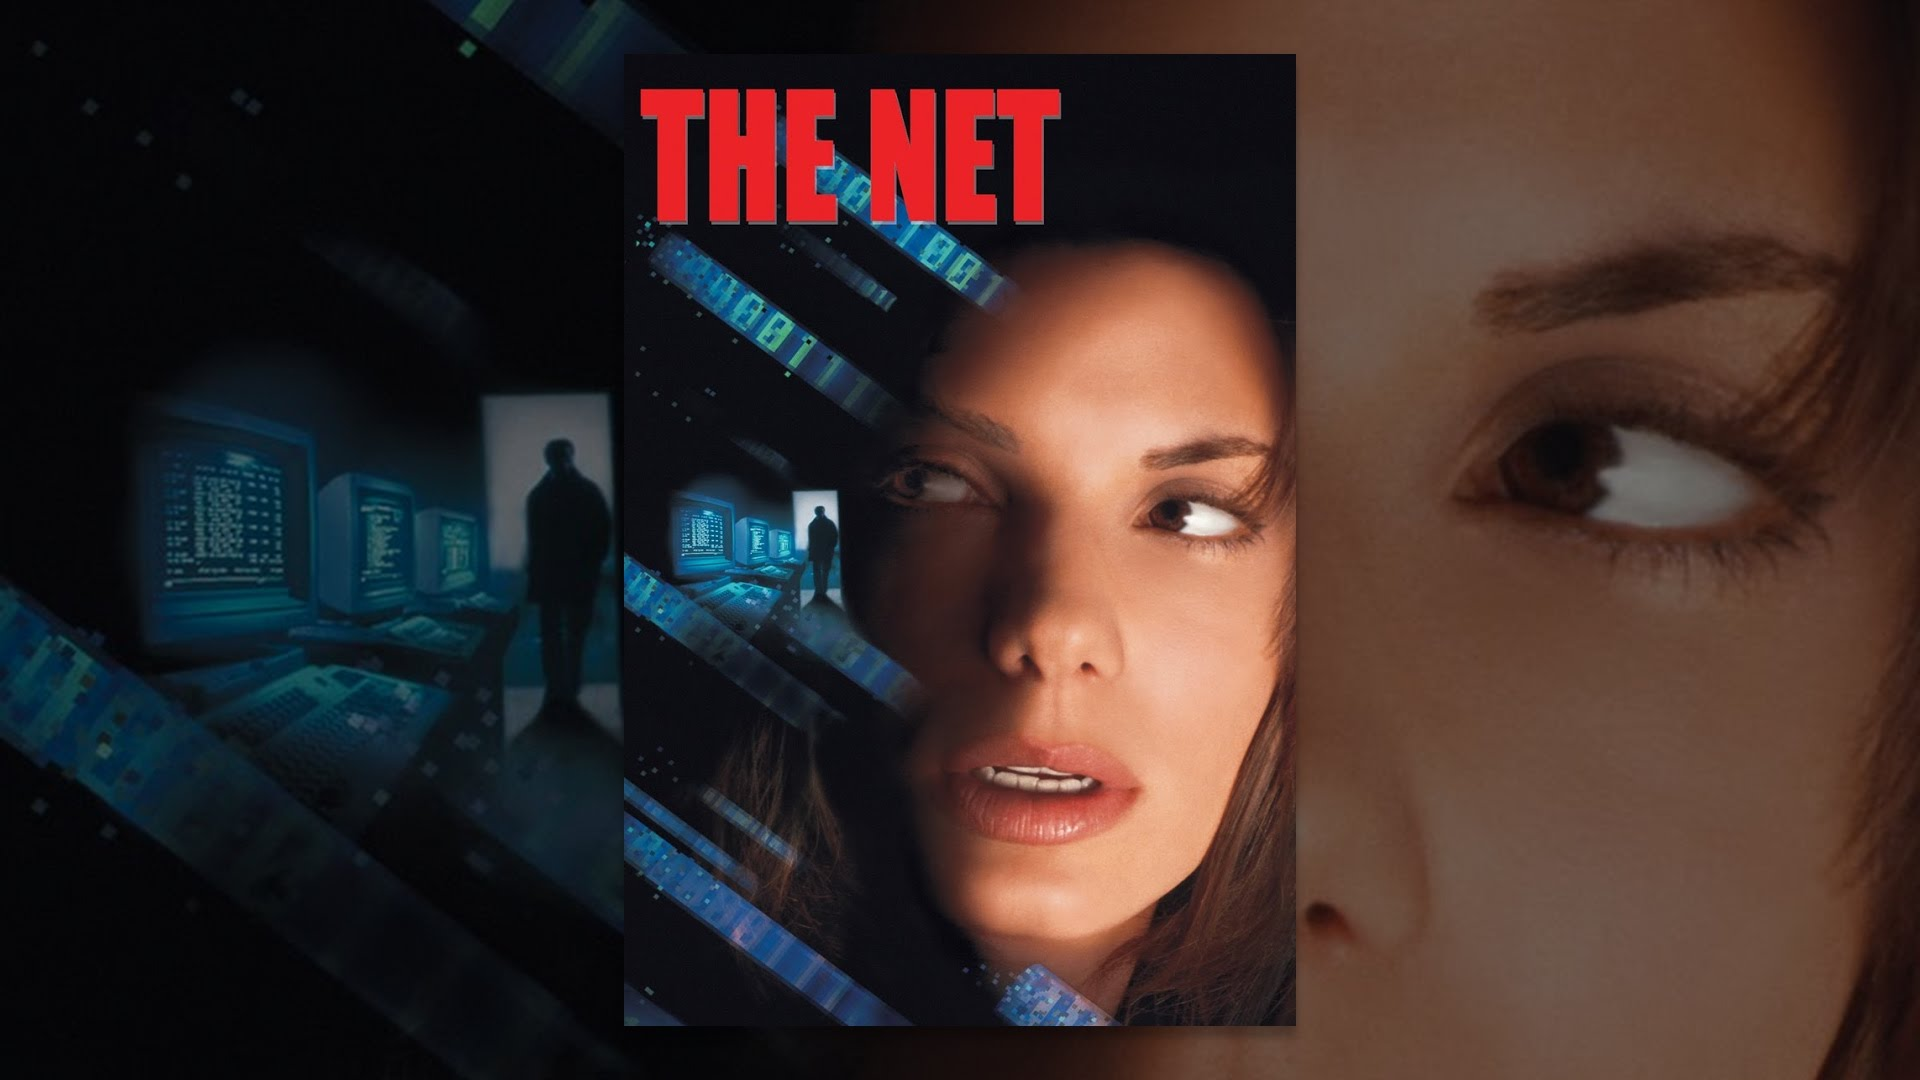 1995 Movie Posters: The Net (1995)